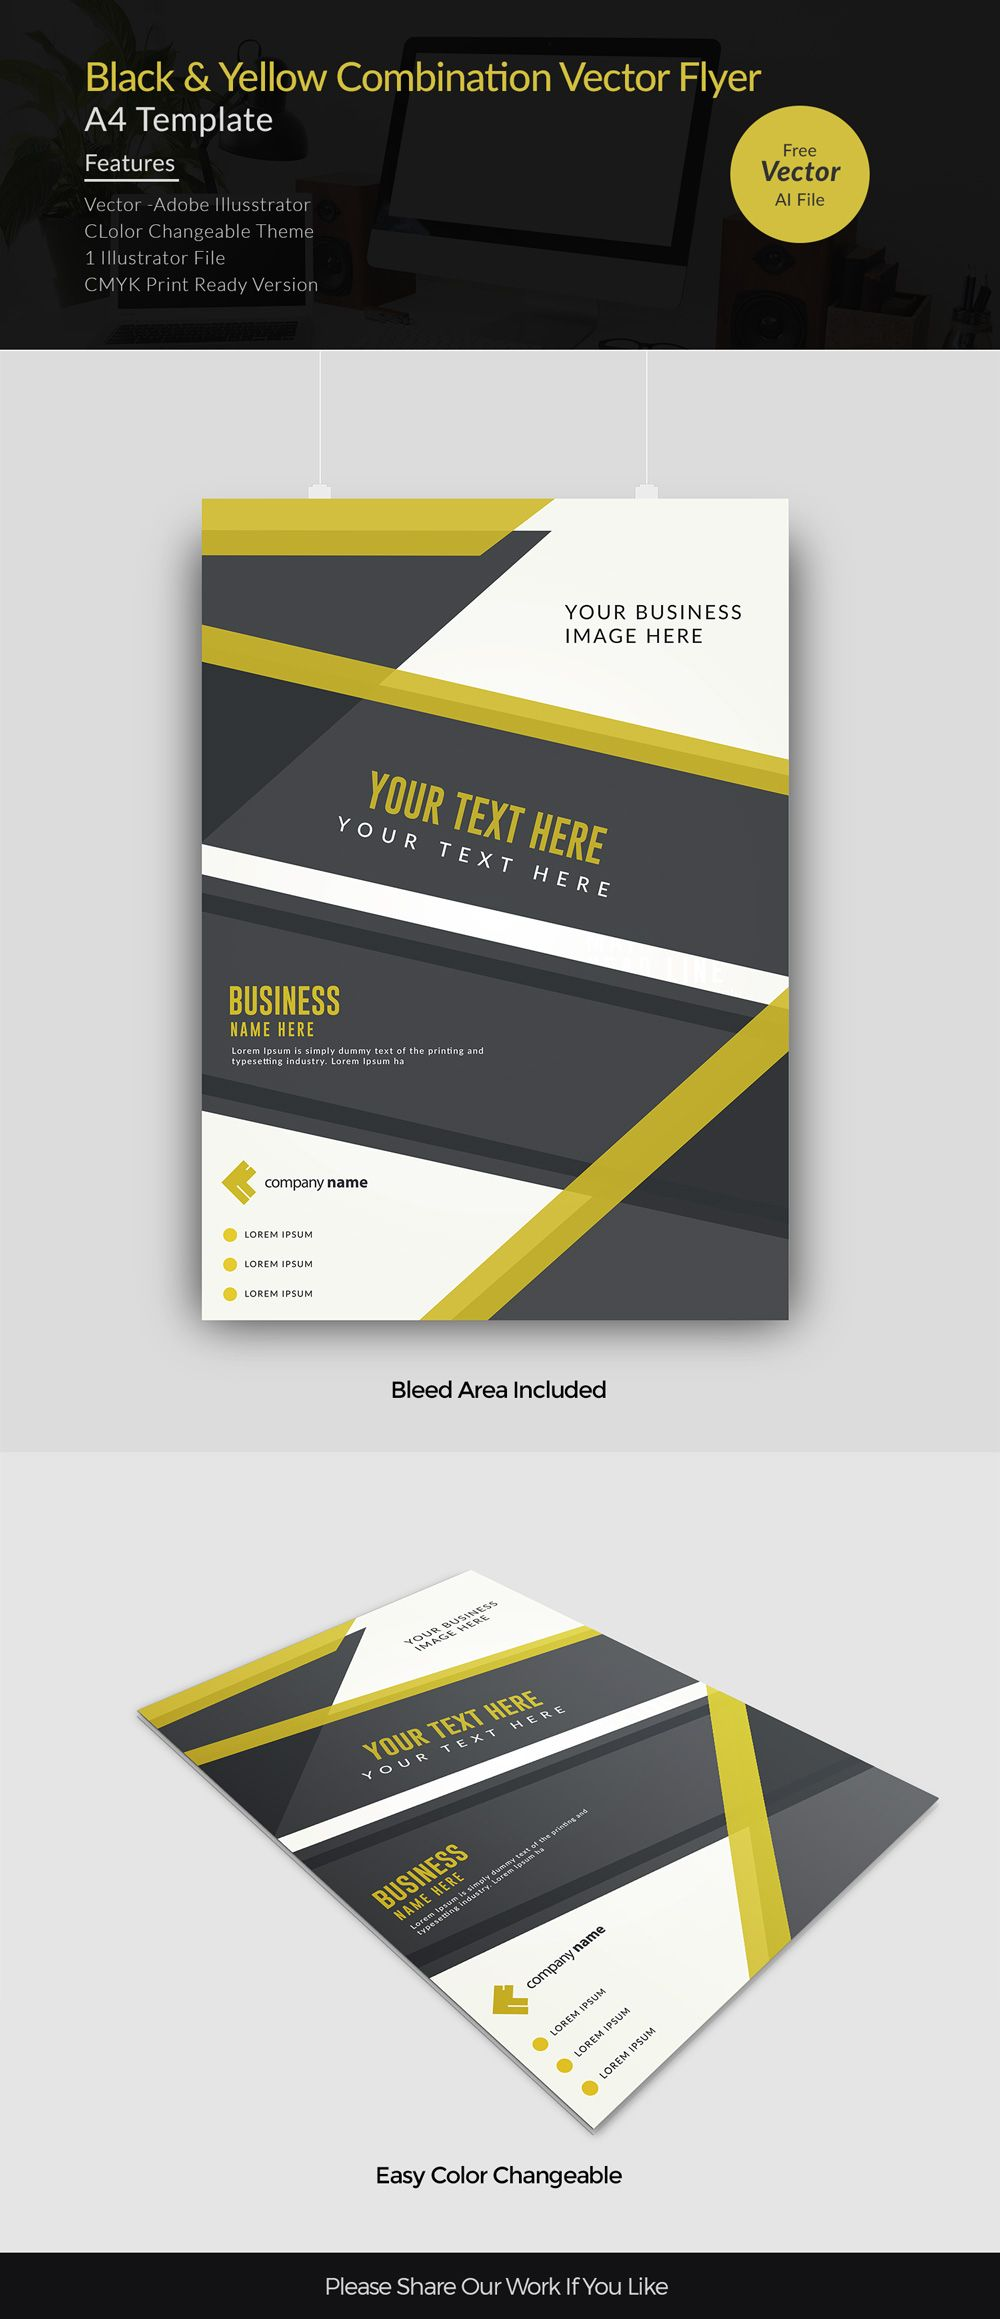 Black And Yellow Combination Corporate Illustrator Flyer Template